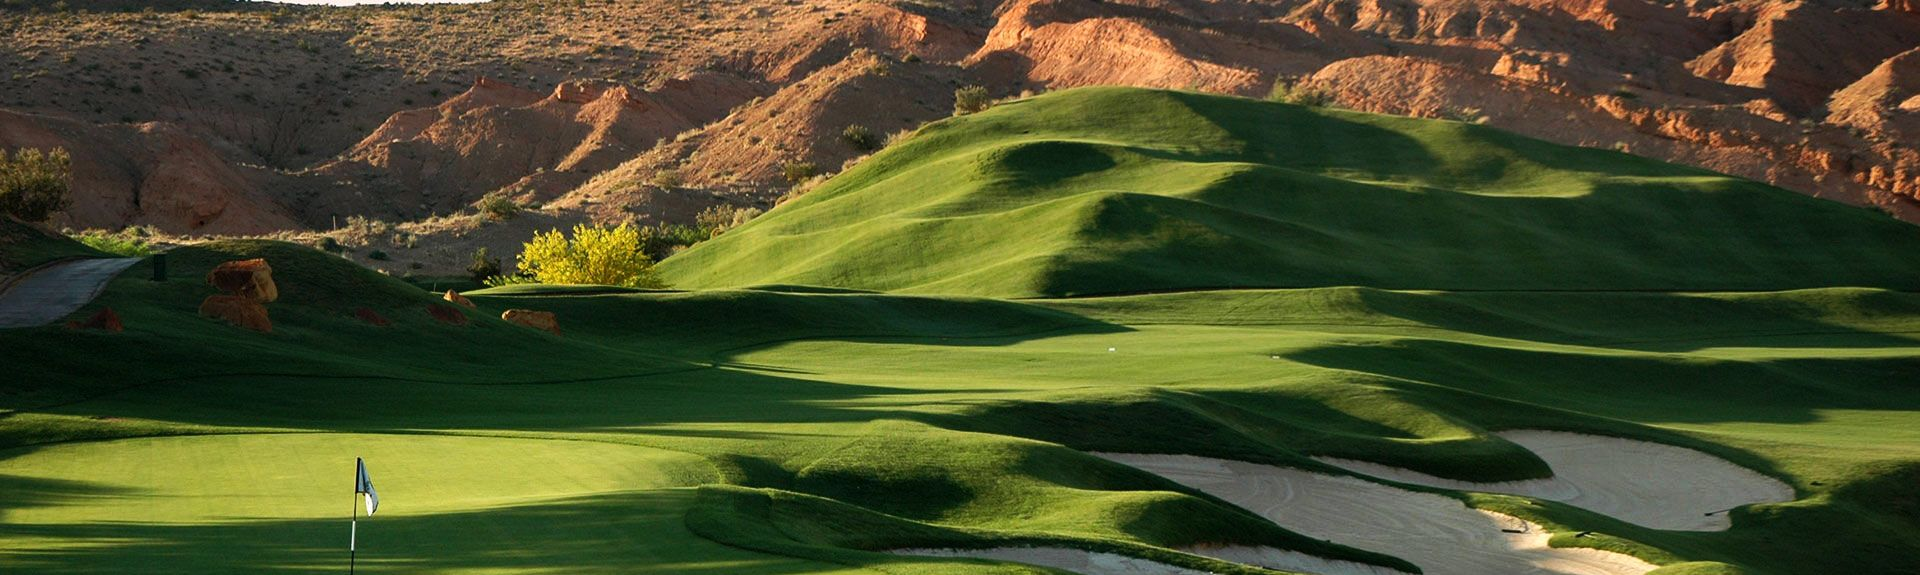 Coyote Willows Golf Course, Mesquite, Nevada, Verenigde Staten